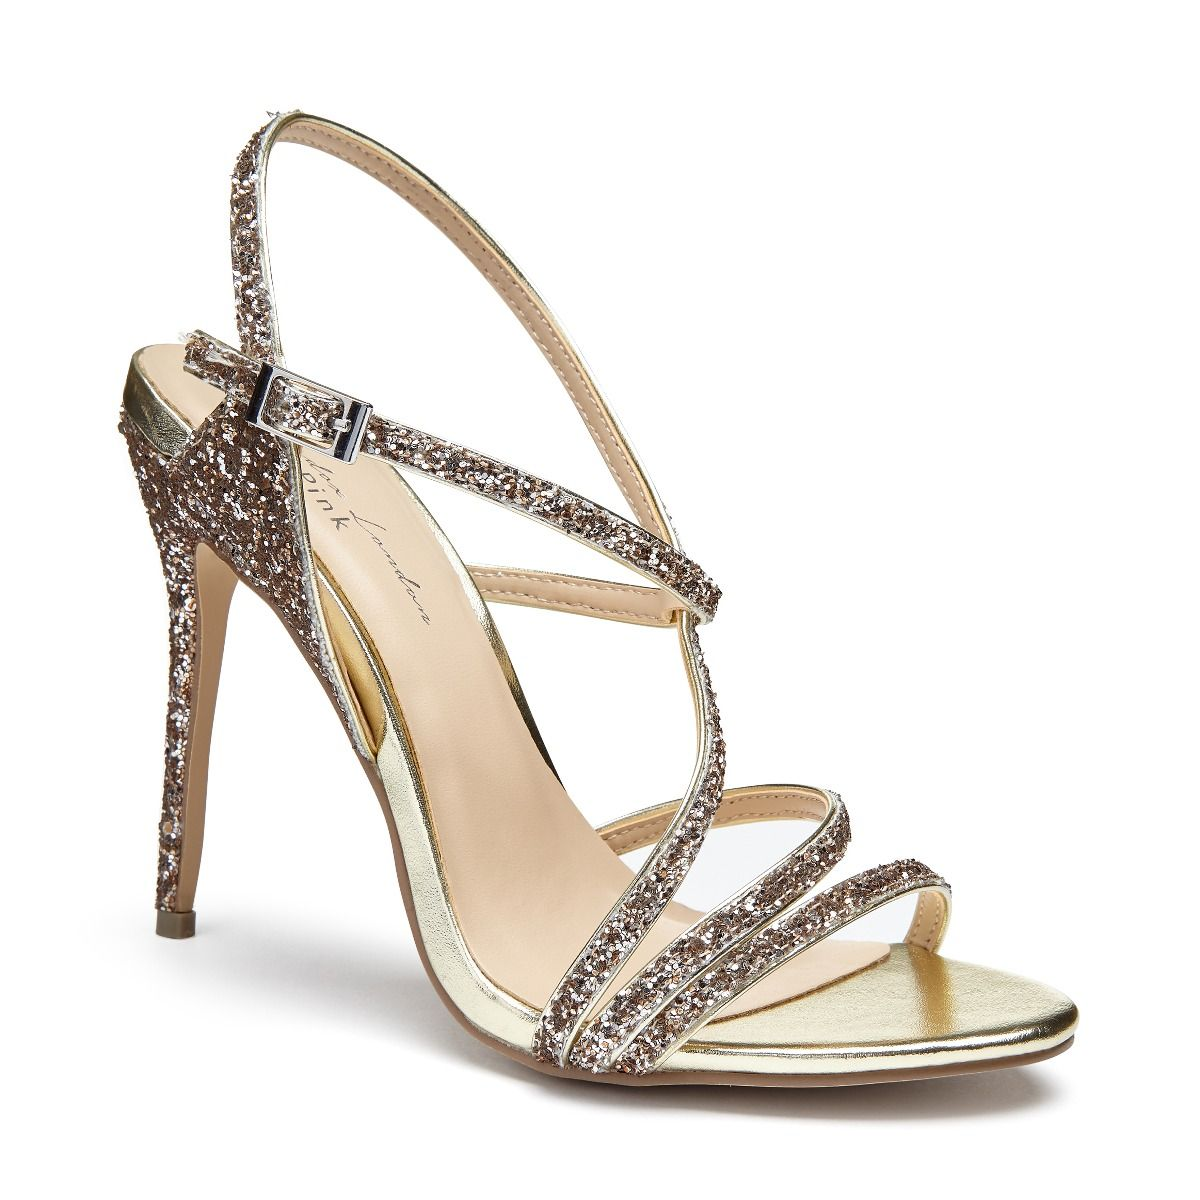 54ca5b74bf Saffie Champagne Glitter High Heel Strappy Sandal | Embellished Sandals |  Occasion Shoes | Paradox London